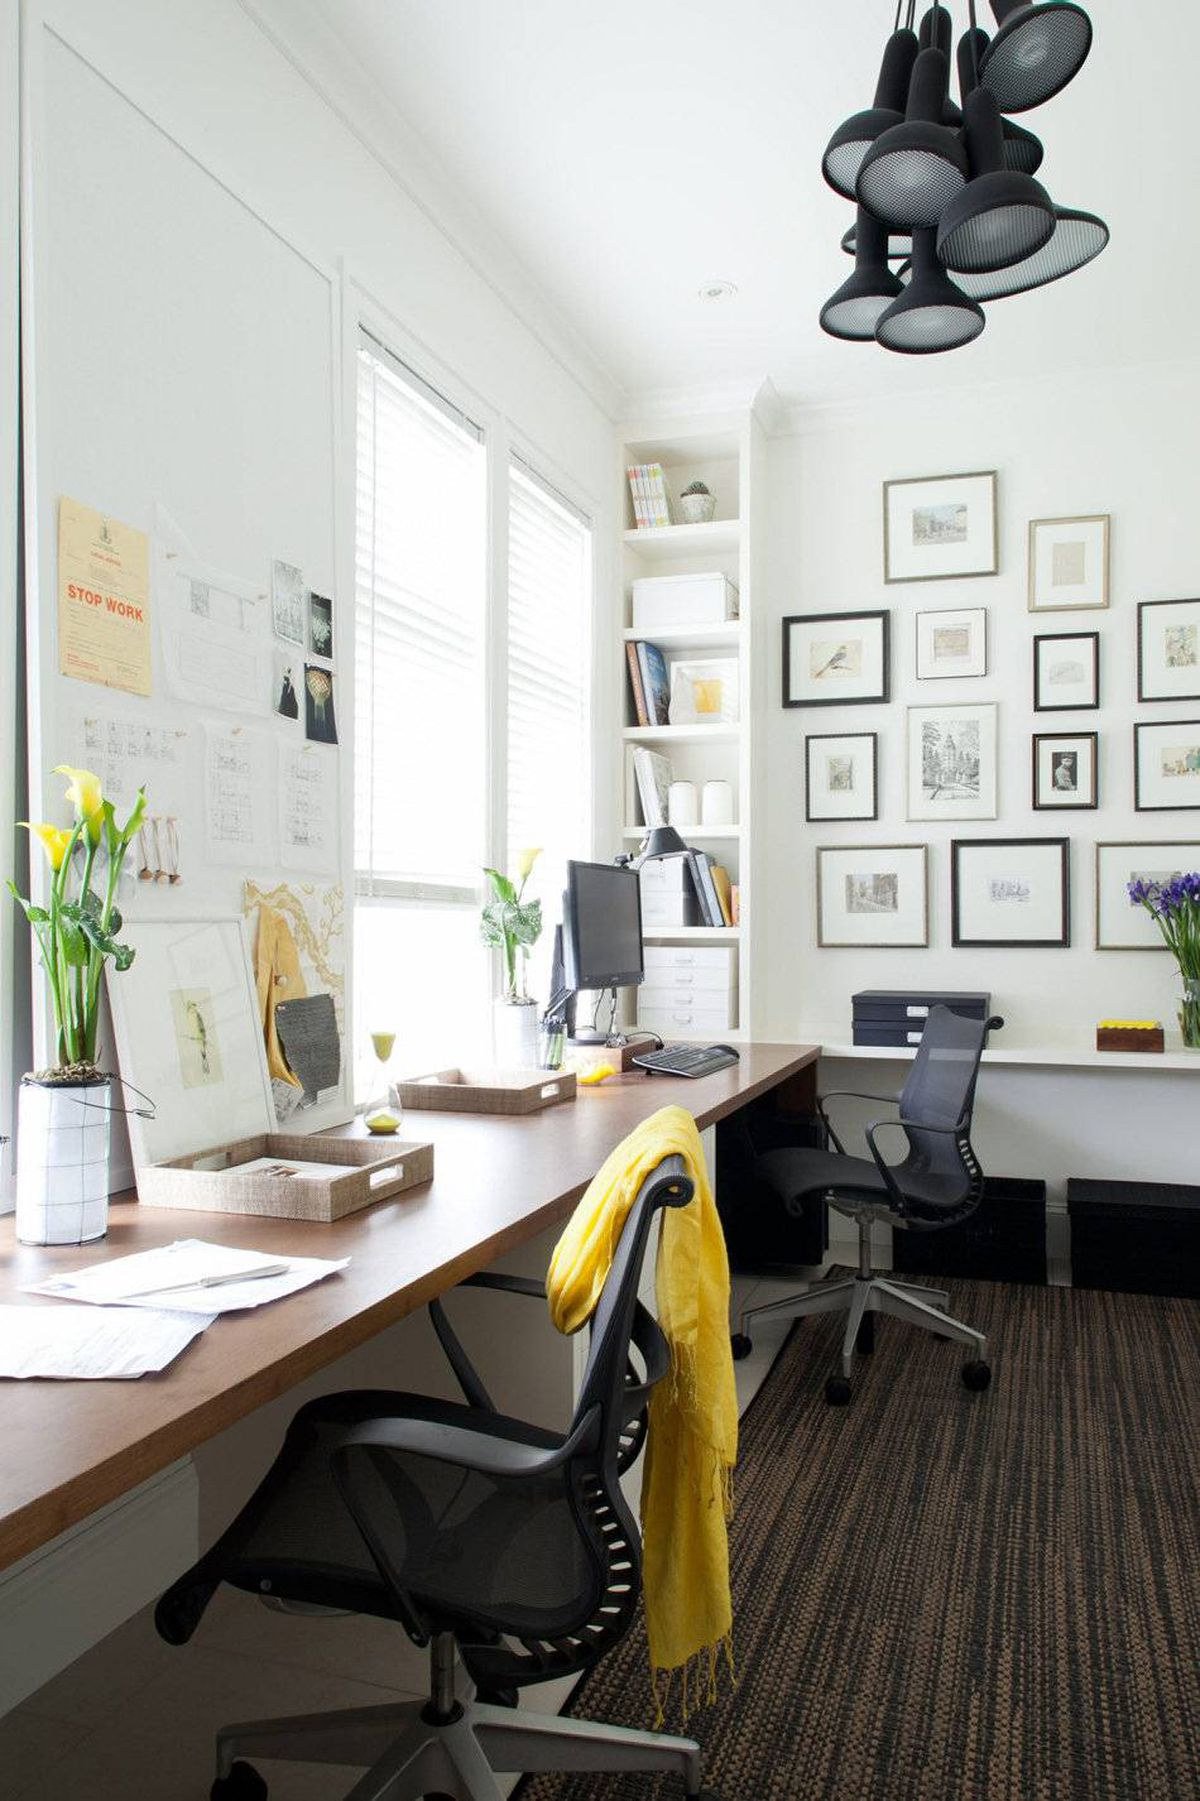 Taking advantage of the room's length, it was decided to run the desks along the window wall, which opened up the view to the front garden, increased the surface area available for working and created space to build full-depth millwork on the opposite side of the room.